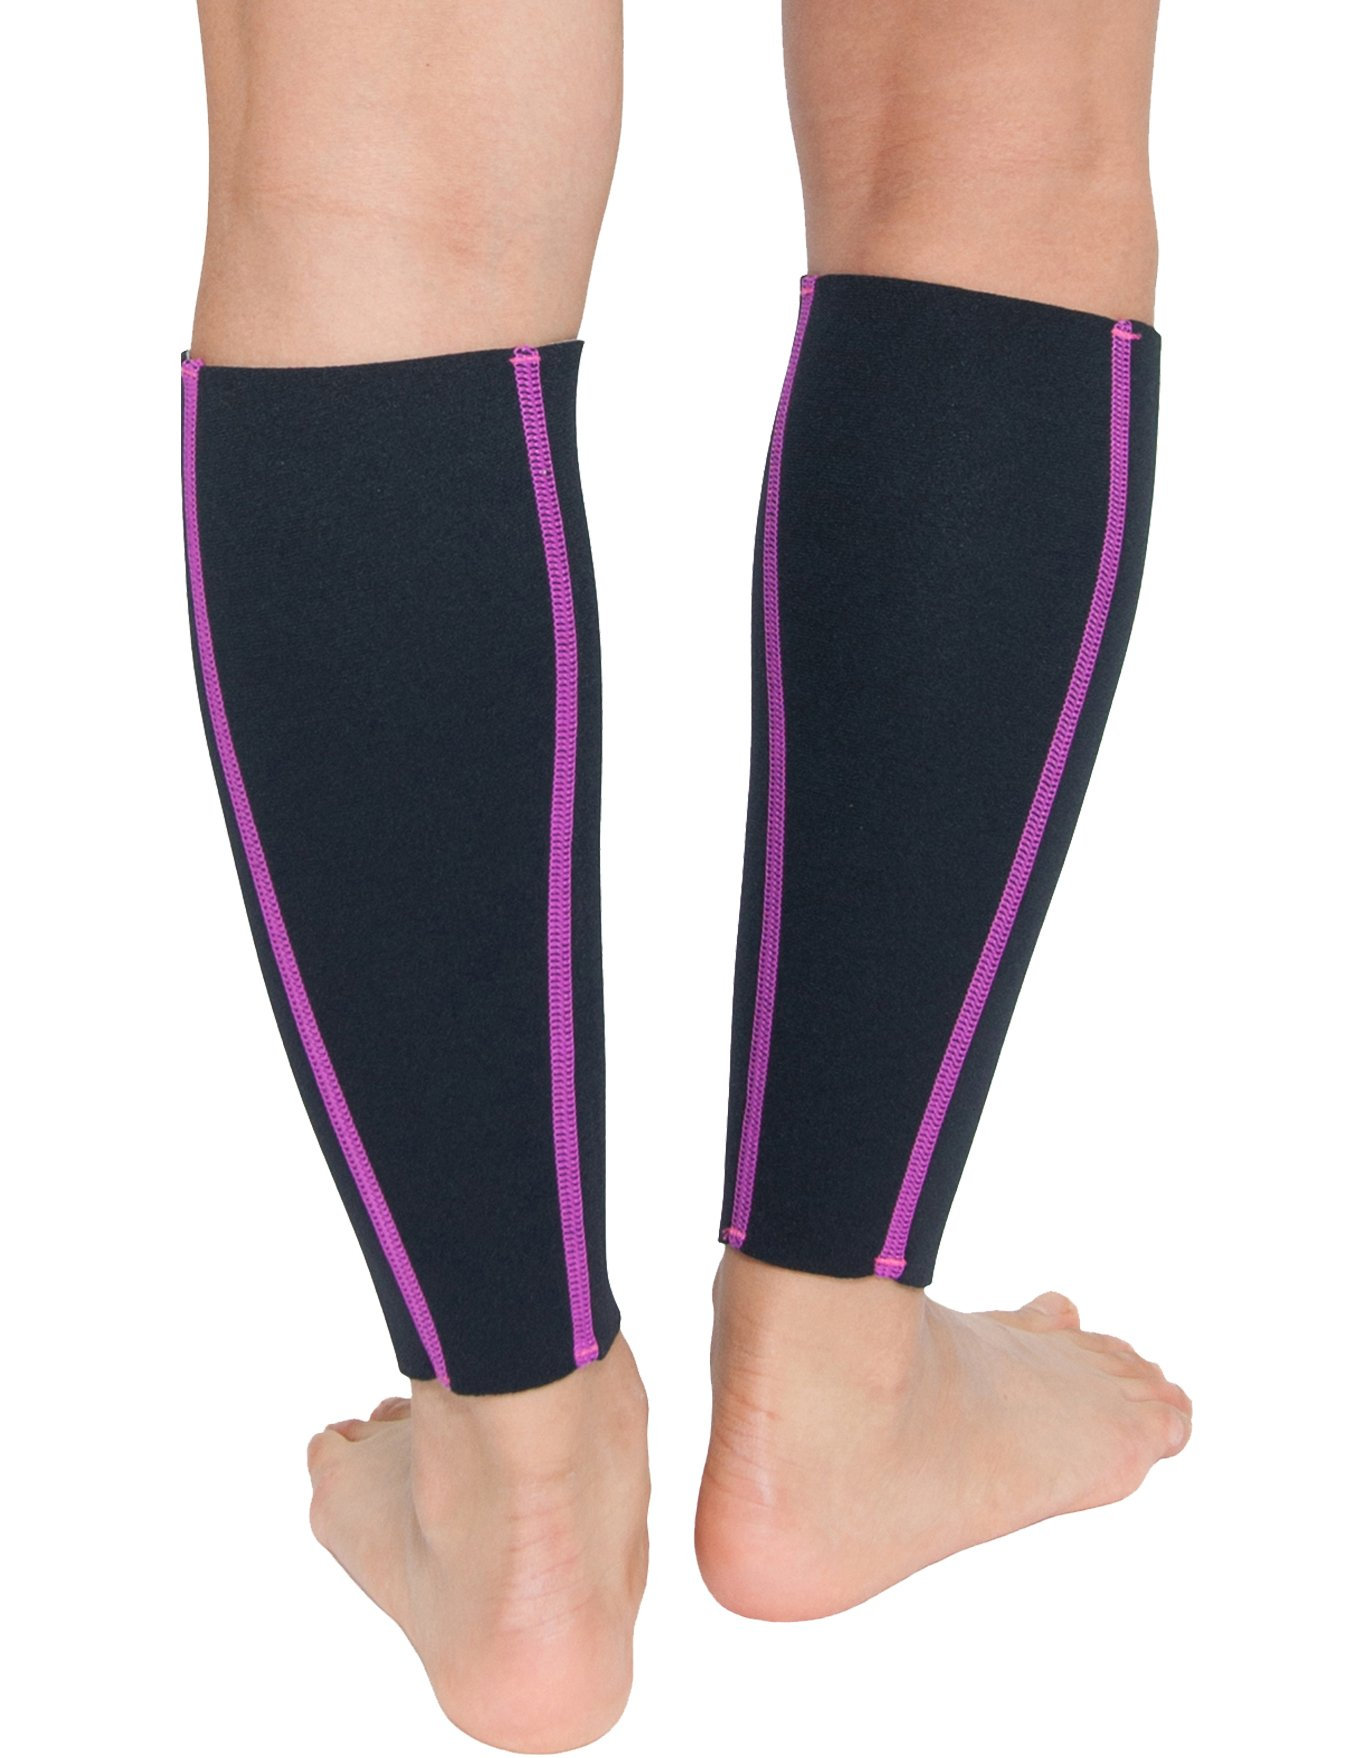 Delfin Spa Heat Maximizing Neoprene Compression Calf Sleeves (Pair) - Large, Pink